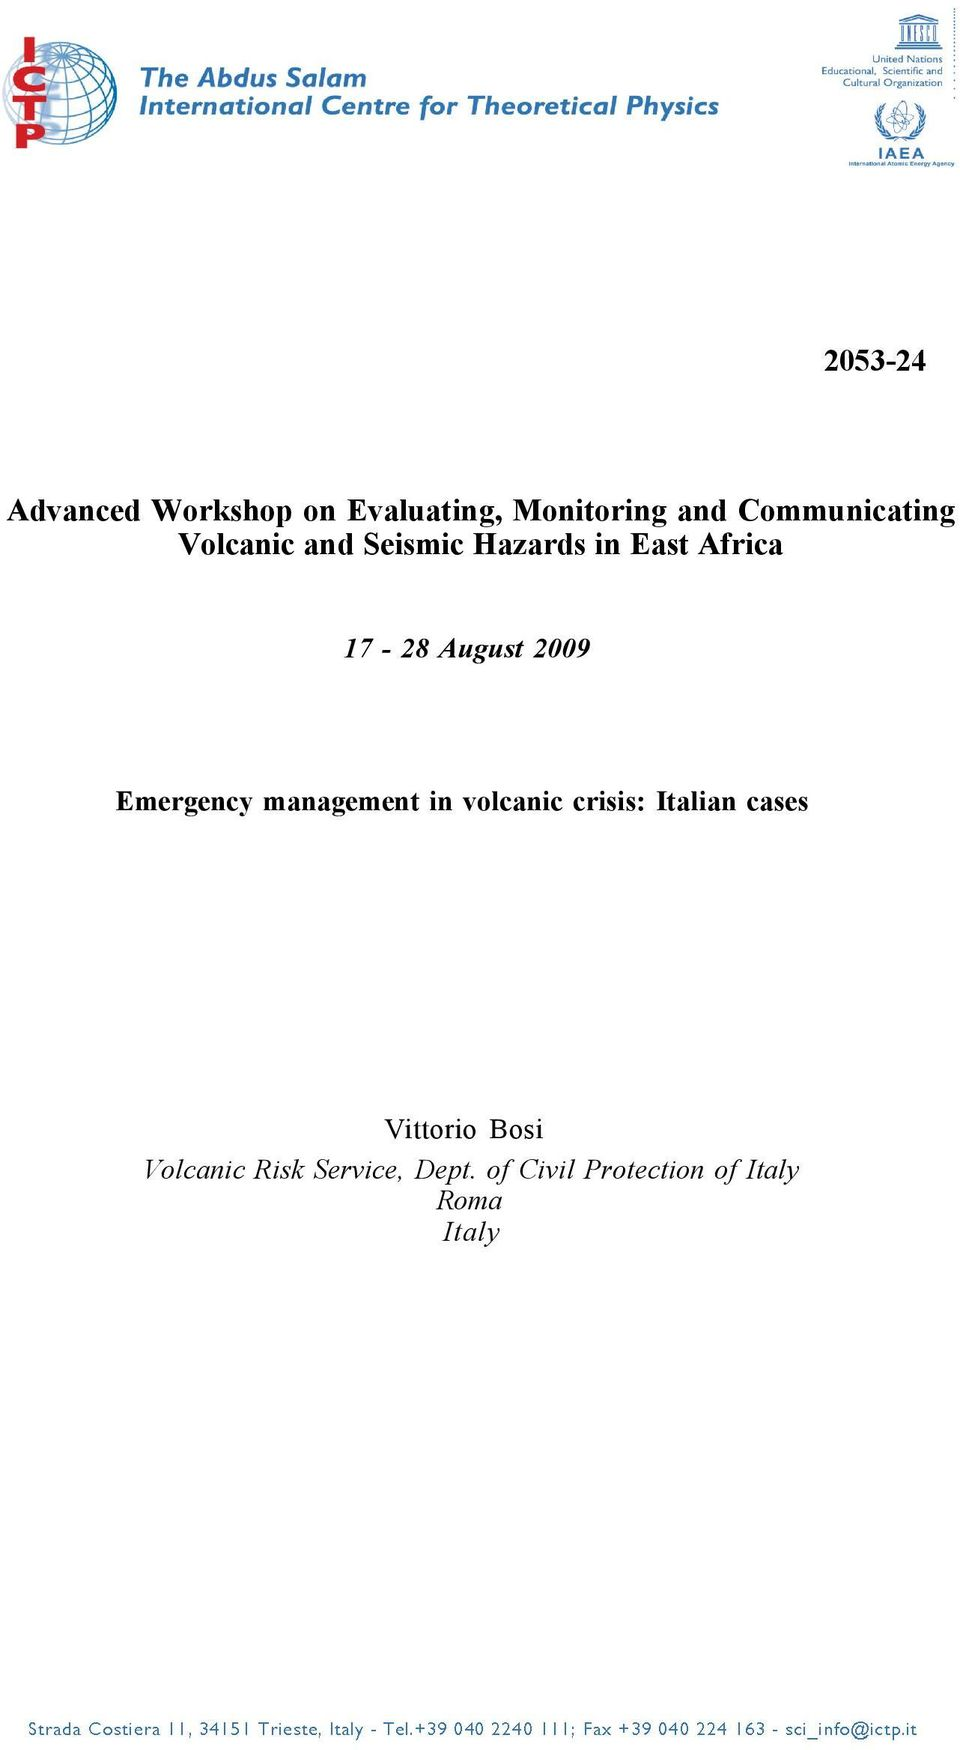 August 2009 Emergency management in volcanic crisis: Italian cases